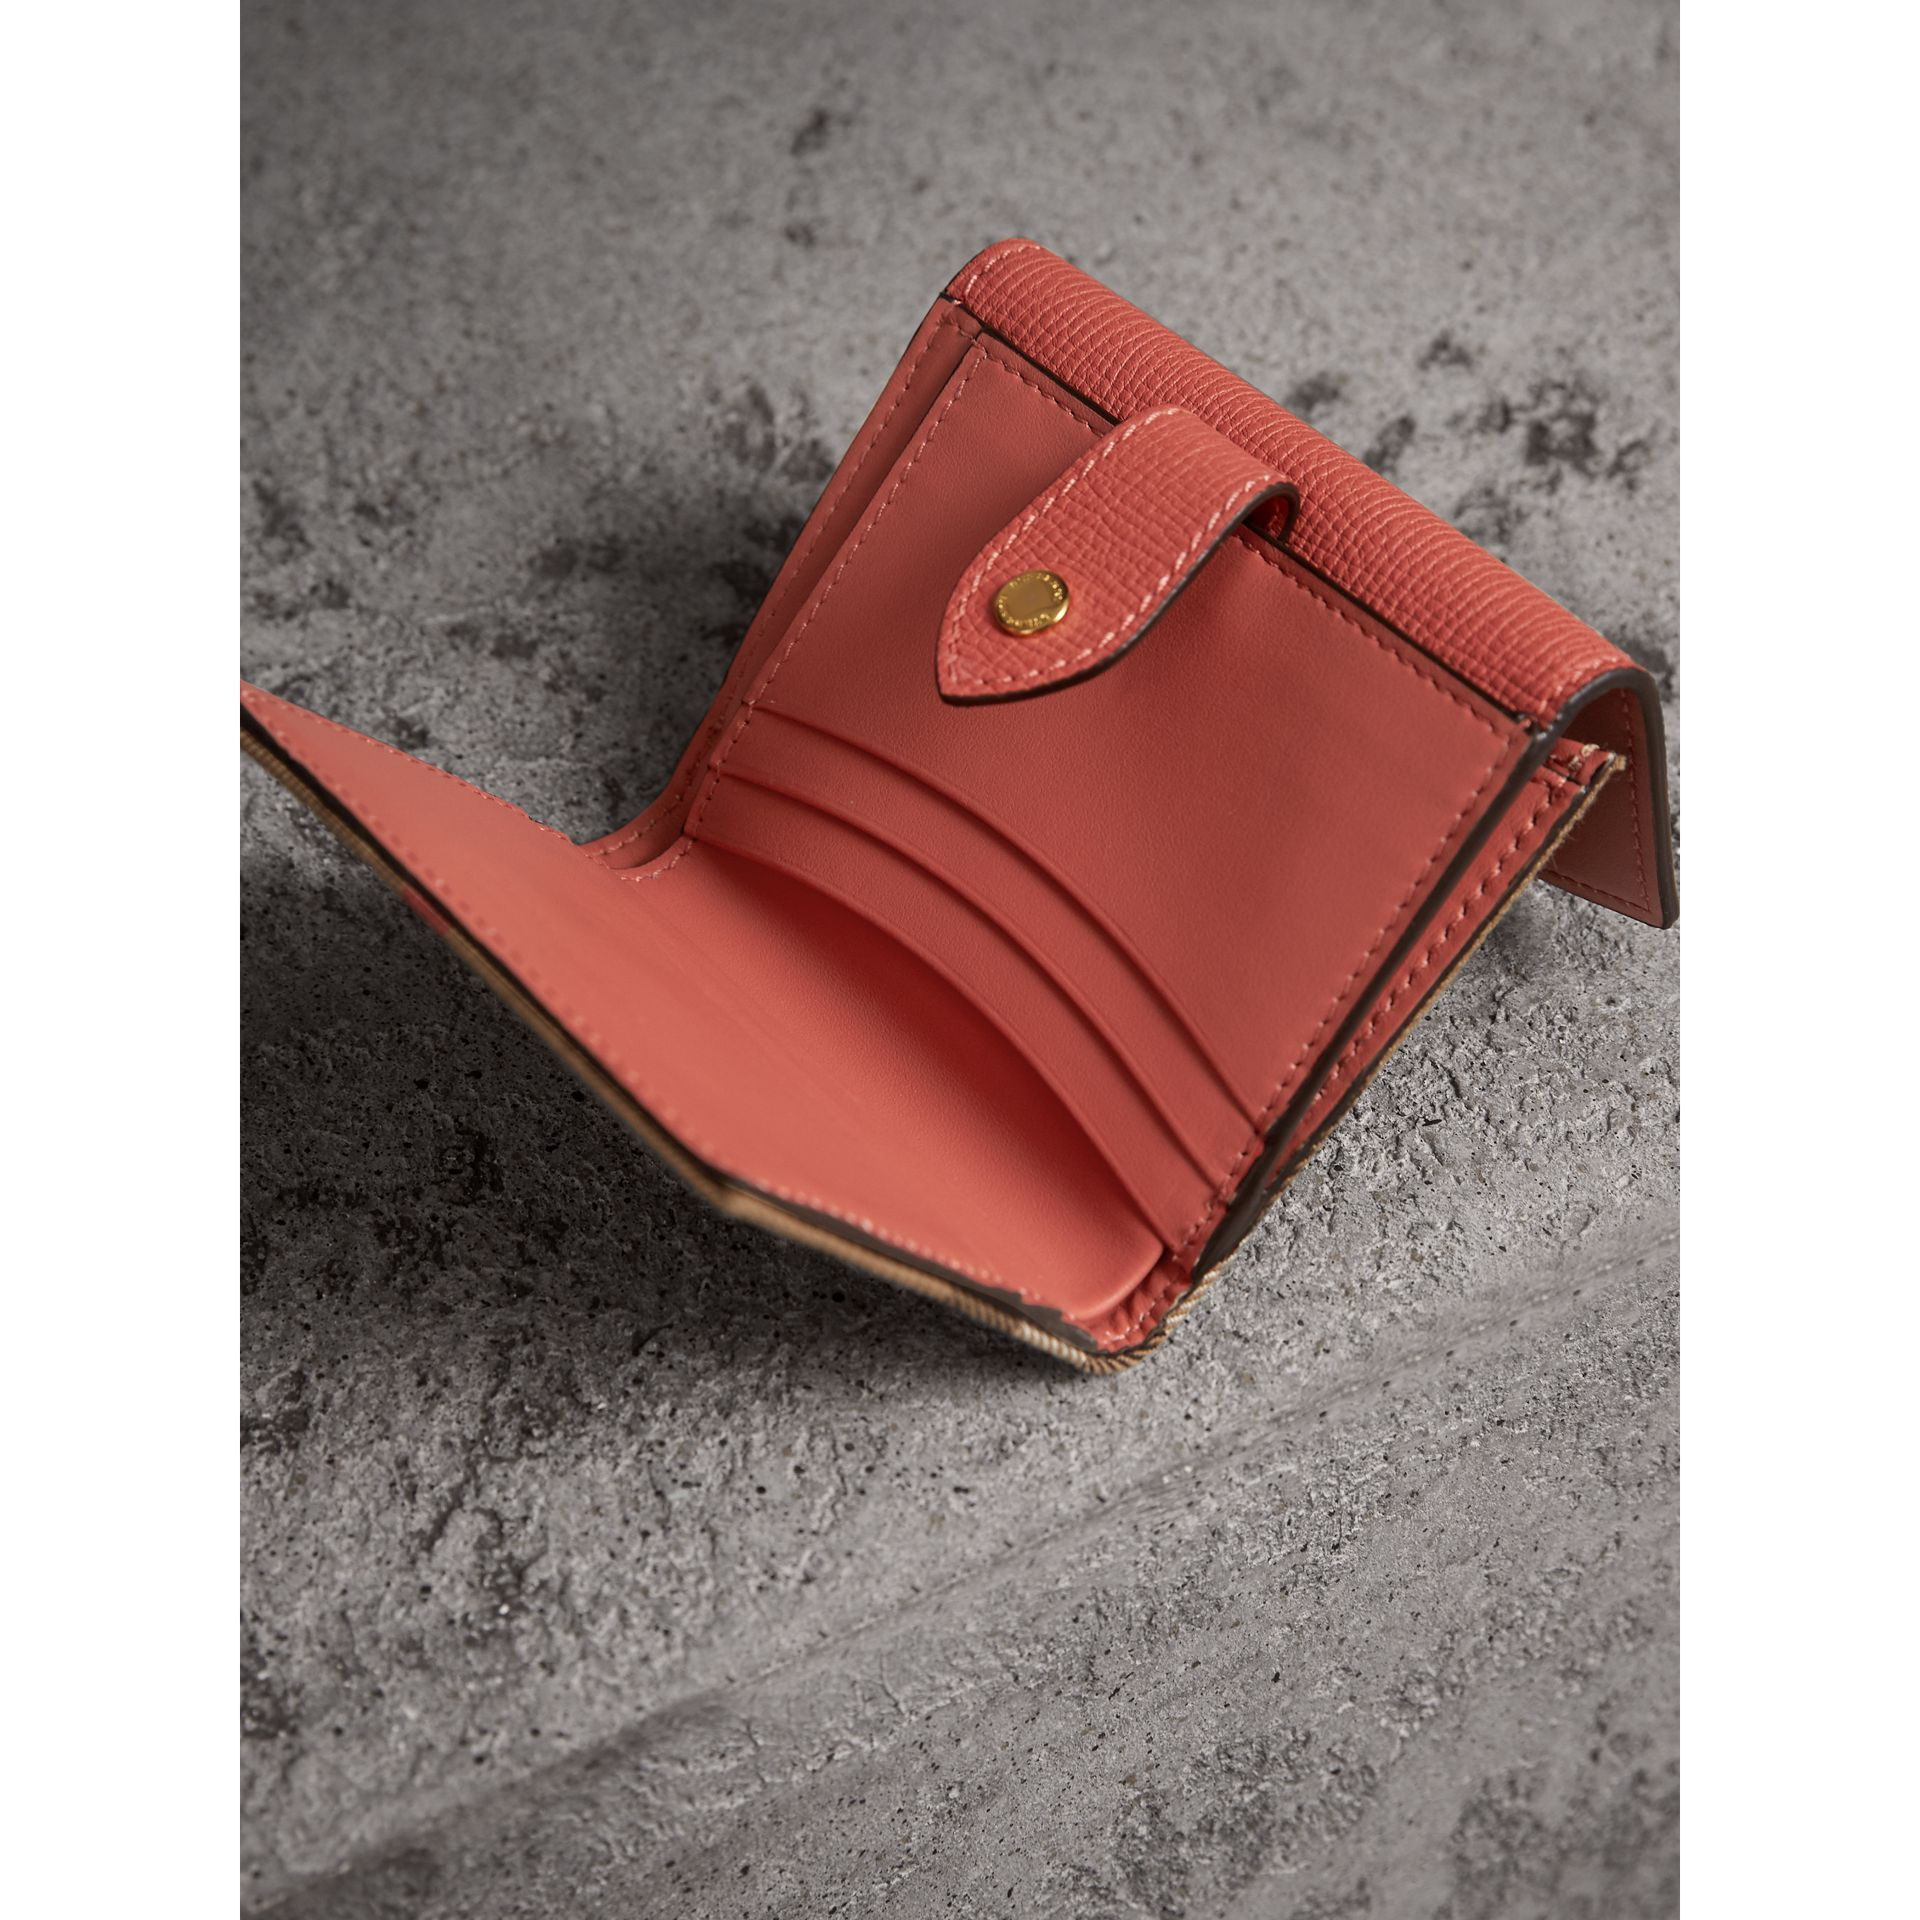 House Check and Leather Wallet in Cinnamon Red - Women | Burberry United States - gallery image 3